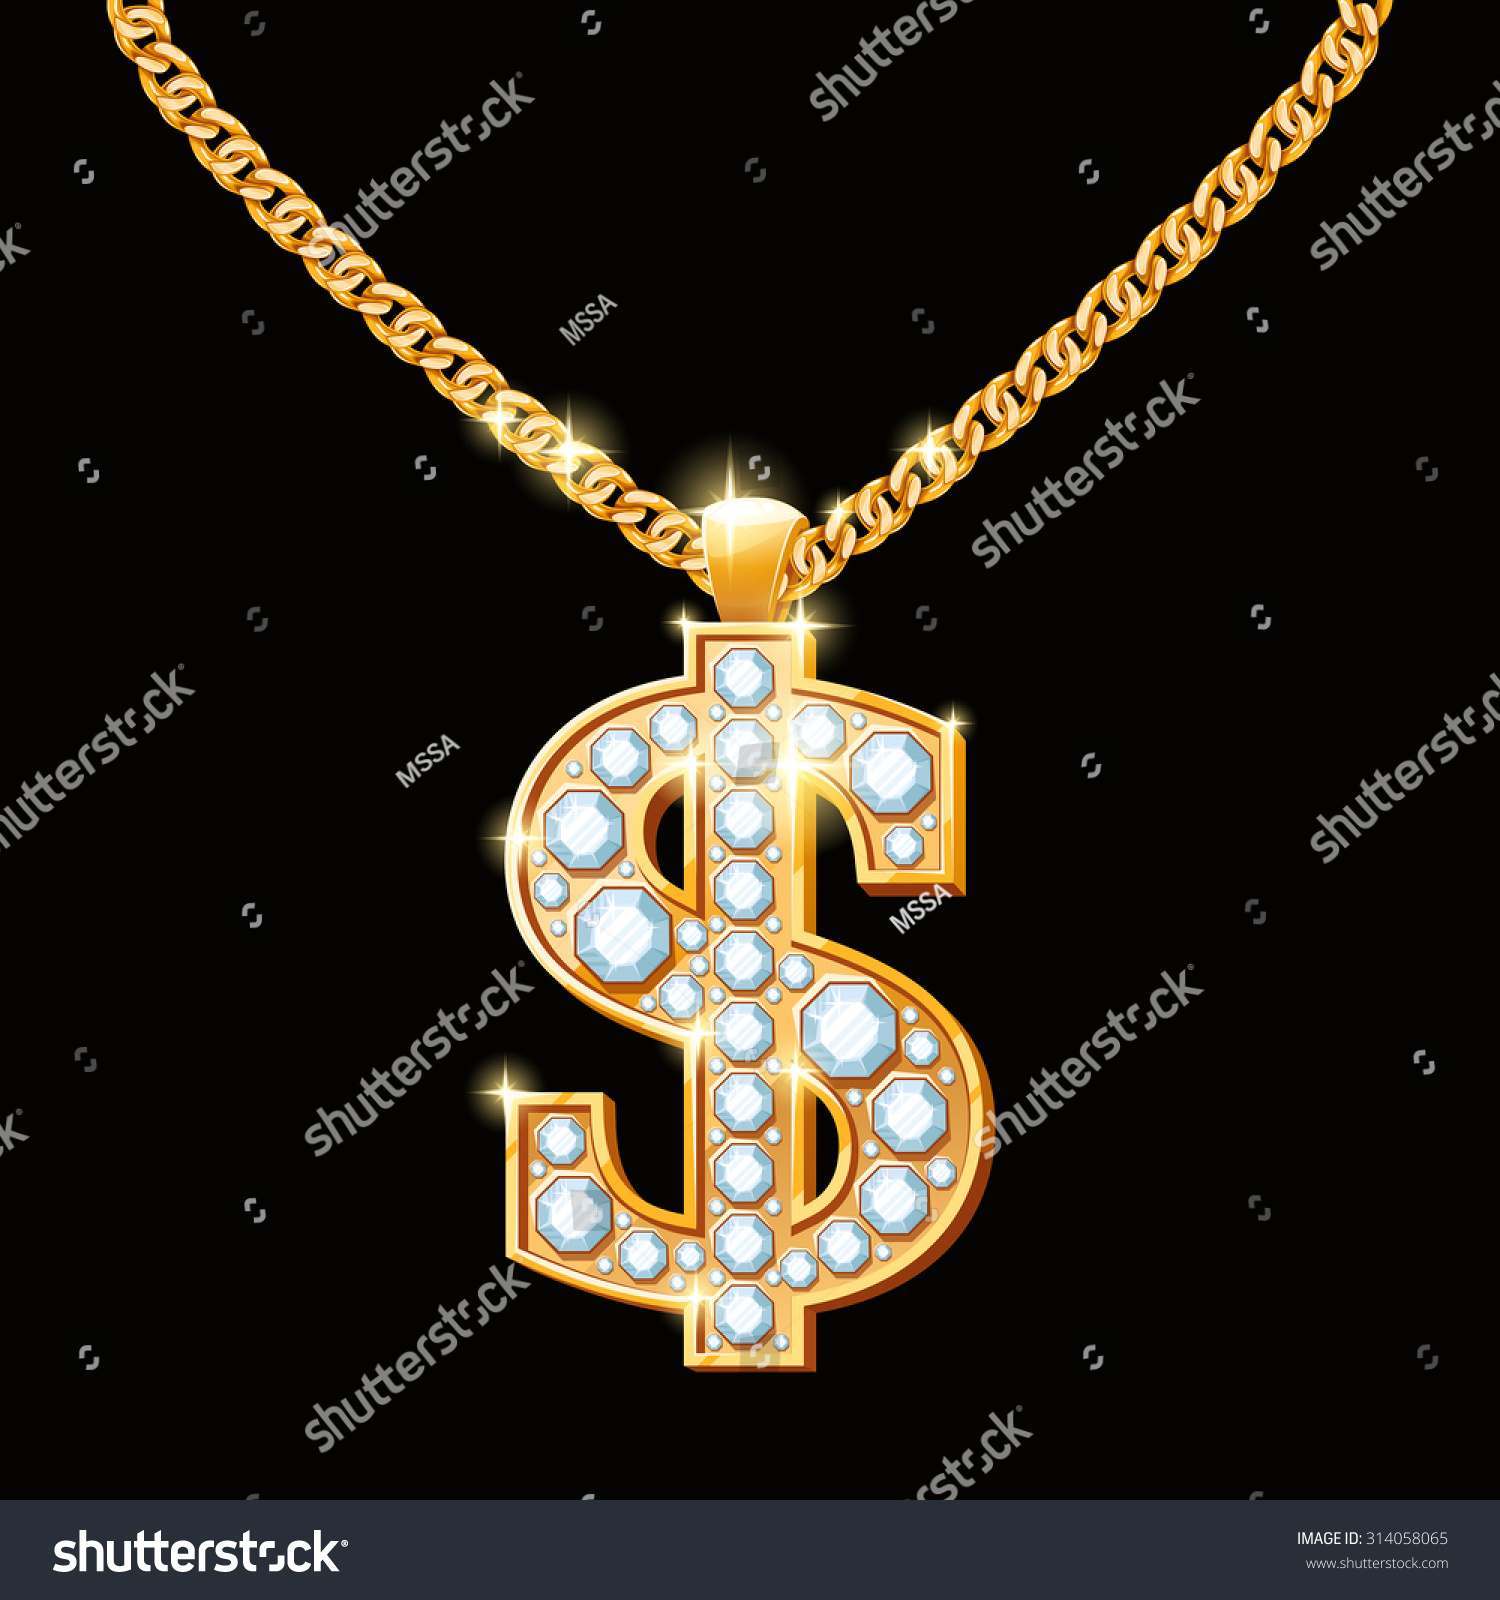 Diamond necklace for rappers